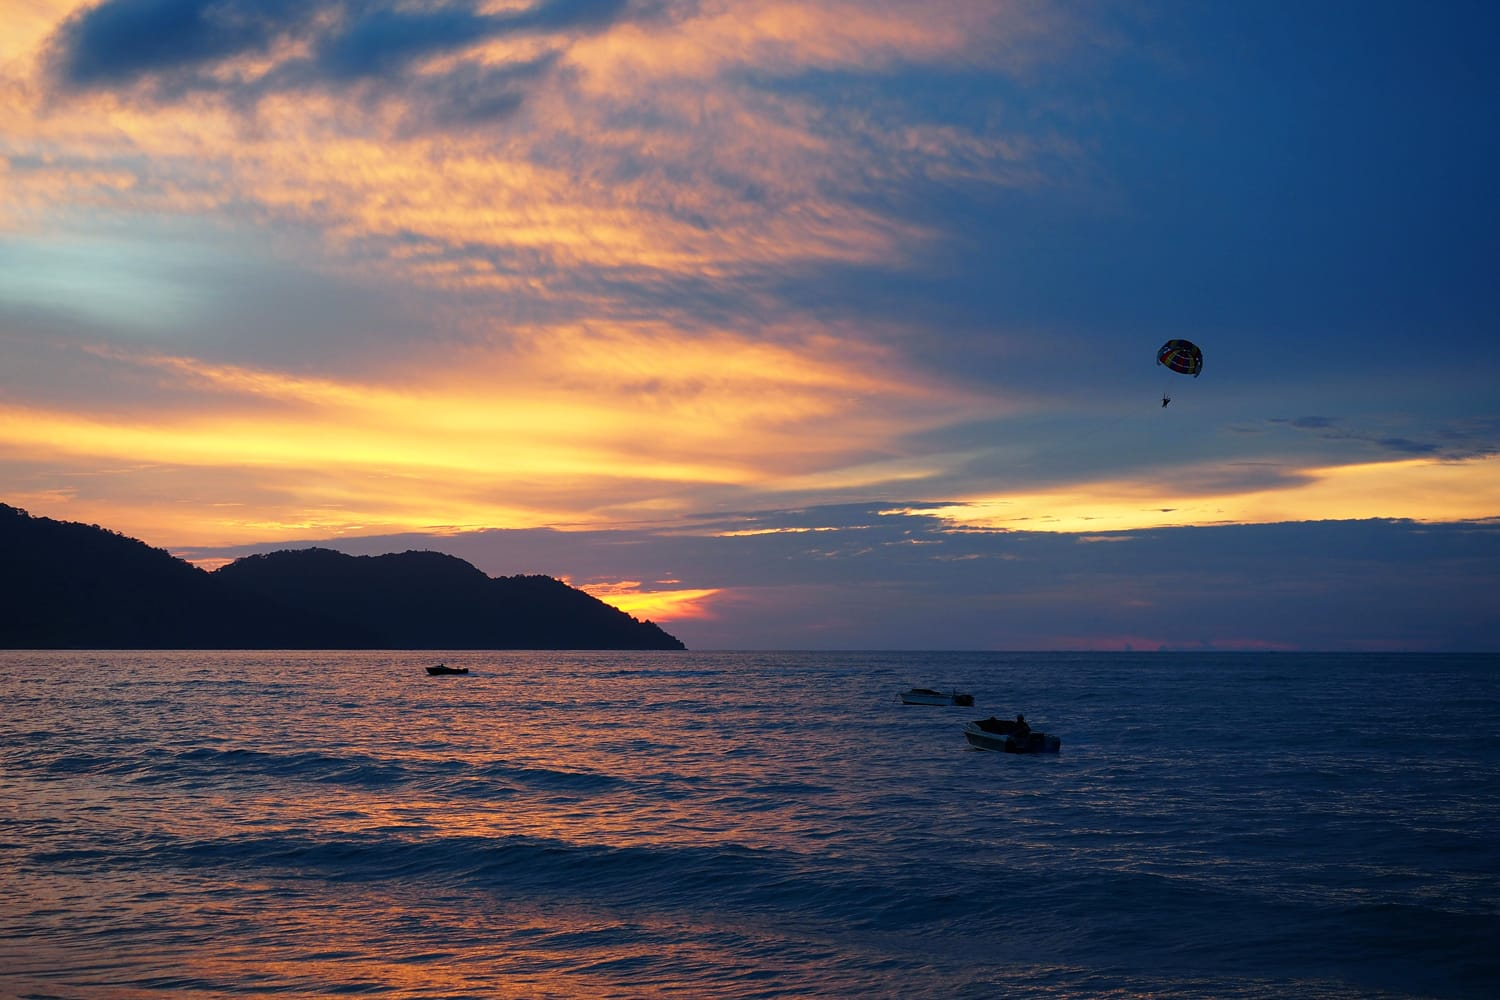 Parasailing with sunset background at Batu Ferringhi, Penang